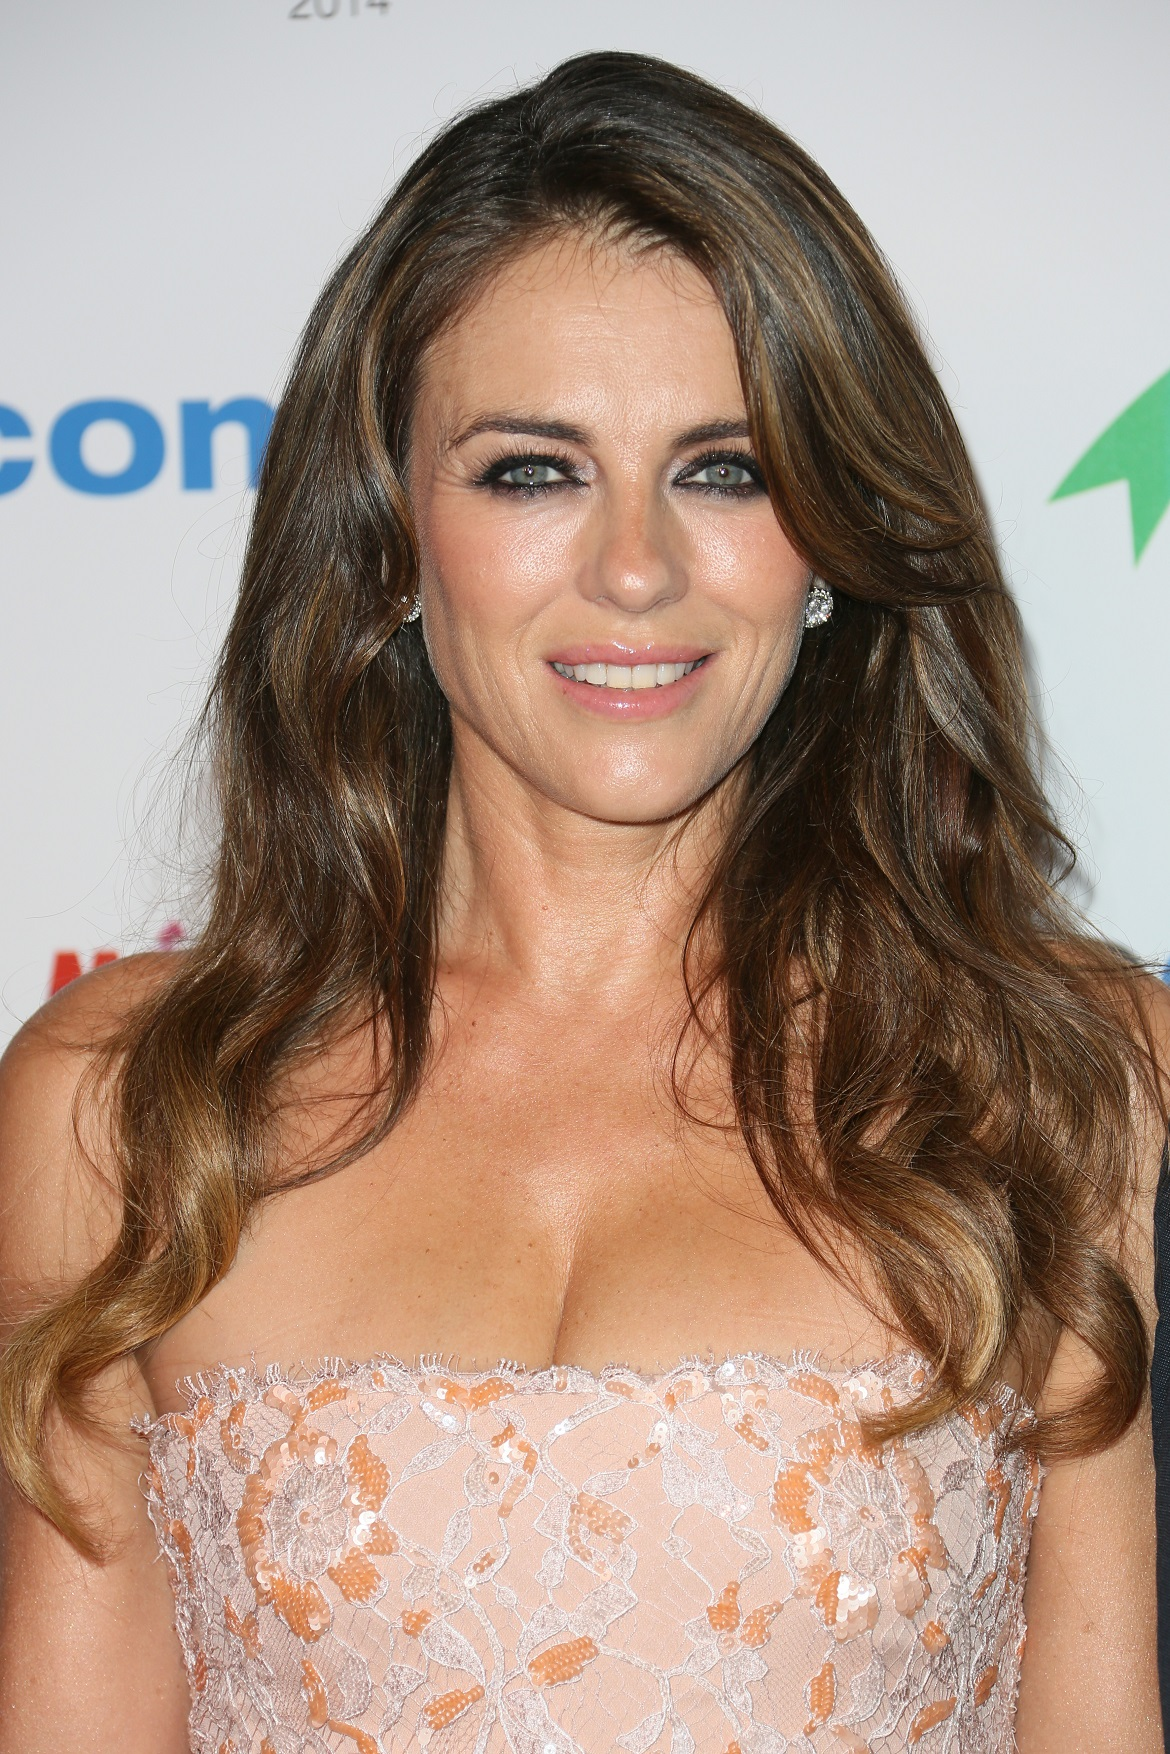 CANNES, FRANCE - OCTOBER 13: Elizabeth Hurley arrives at the MIPCOM opening Party at Hotel Martinez on October 13, 2014 in Cannes, France. (Photo by Tony Barson/FilmMagic)